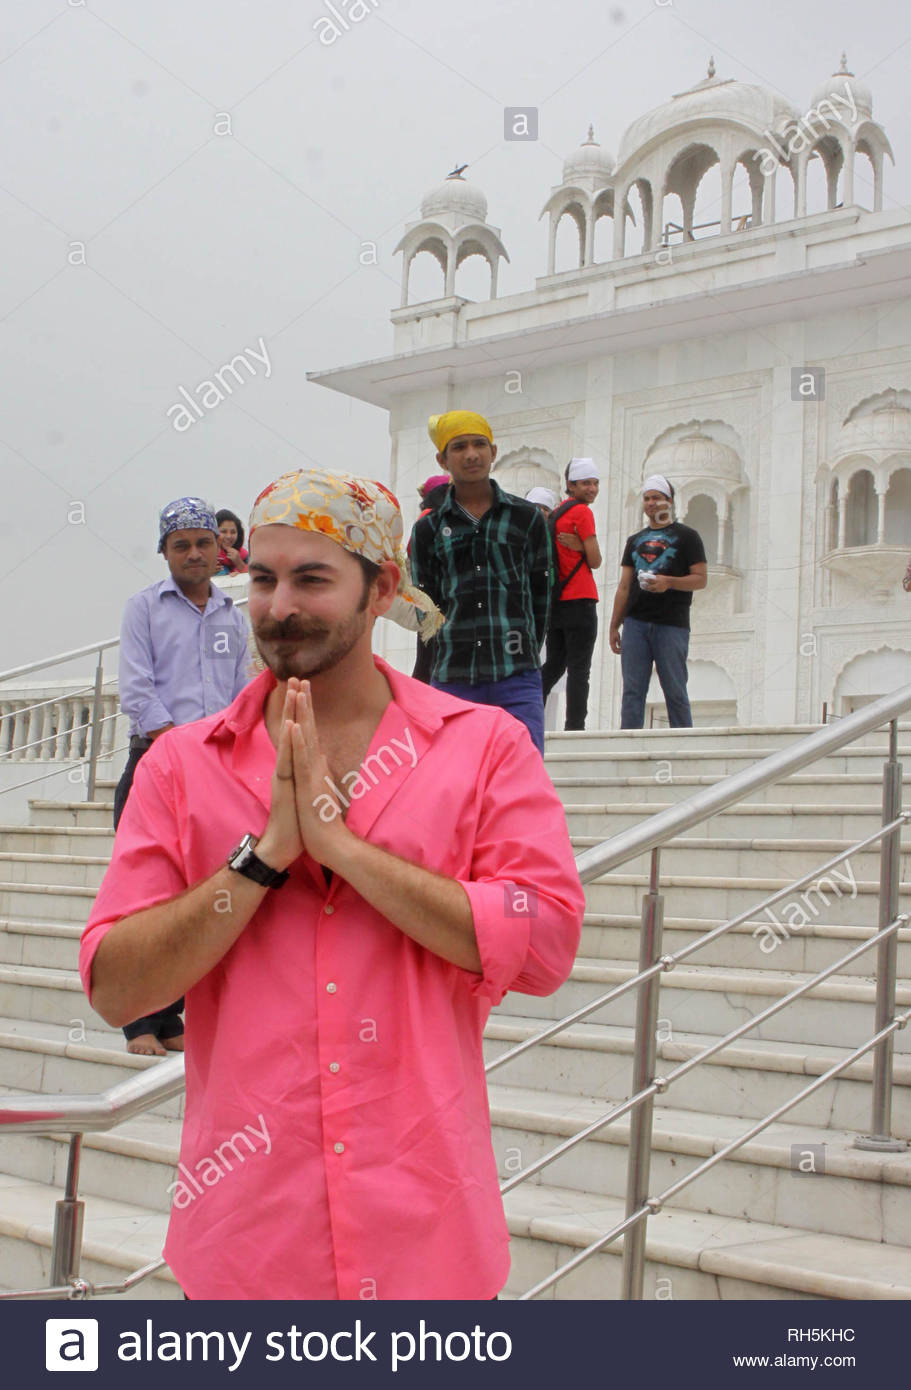 Bollywood actor Neil Nitin Mukesh offers prayer at the Bangla Saheb Gurudwara for the success of his latest movie Shortcut Romeo, in New Delhi, India on June 18, 2013. Shortcut Romeo, scheduled for release on June 21, is a romantic crime thriller produced by Susi Ganeshan which is a Hindi remake of the filmmakerÕs own Tamil film Thiruttu Payale, starring Neil Nitin Mukesh, Puja Gupta and Ameesha Patel. The film was screened at Marche du Film at Cannes Film Festival in May 2013. (Imtiyaz Khan) - Stock Image